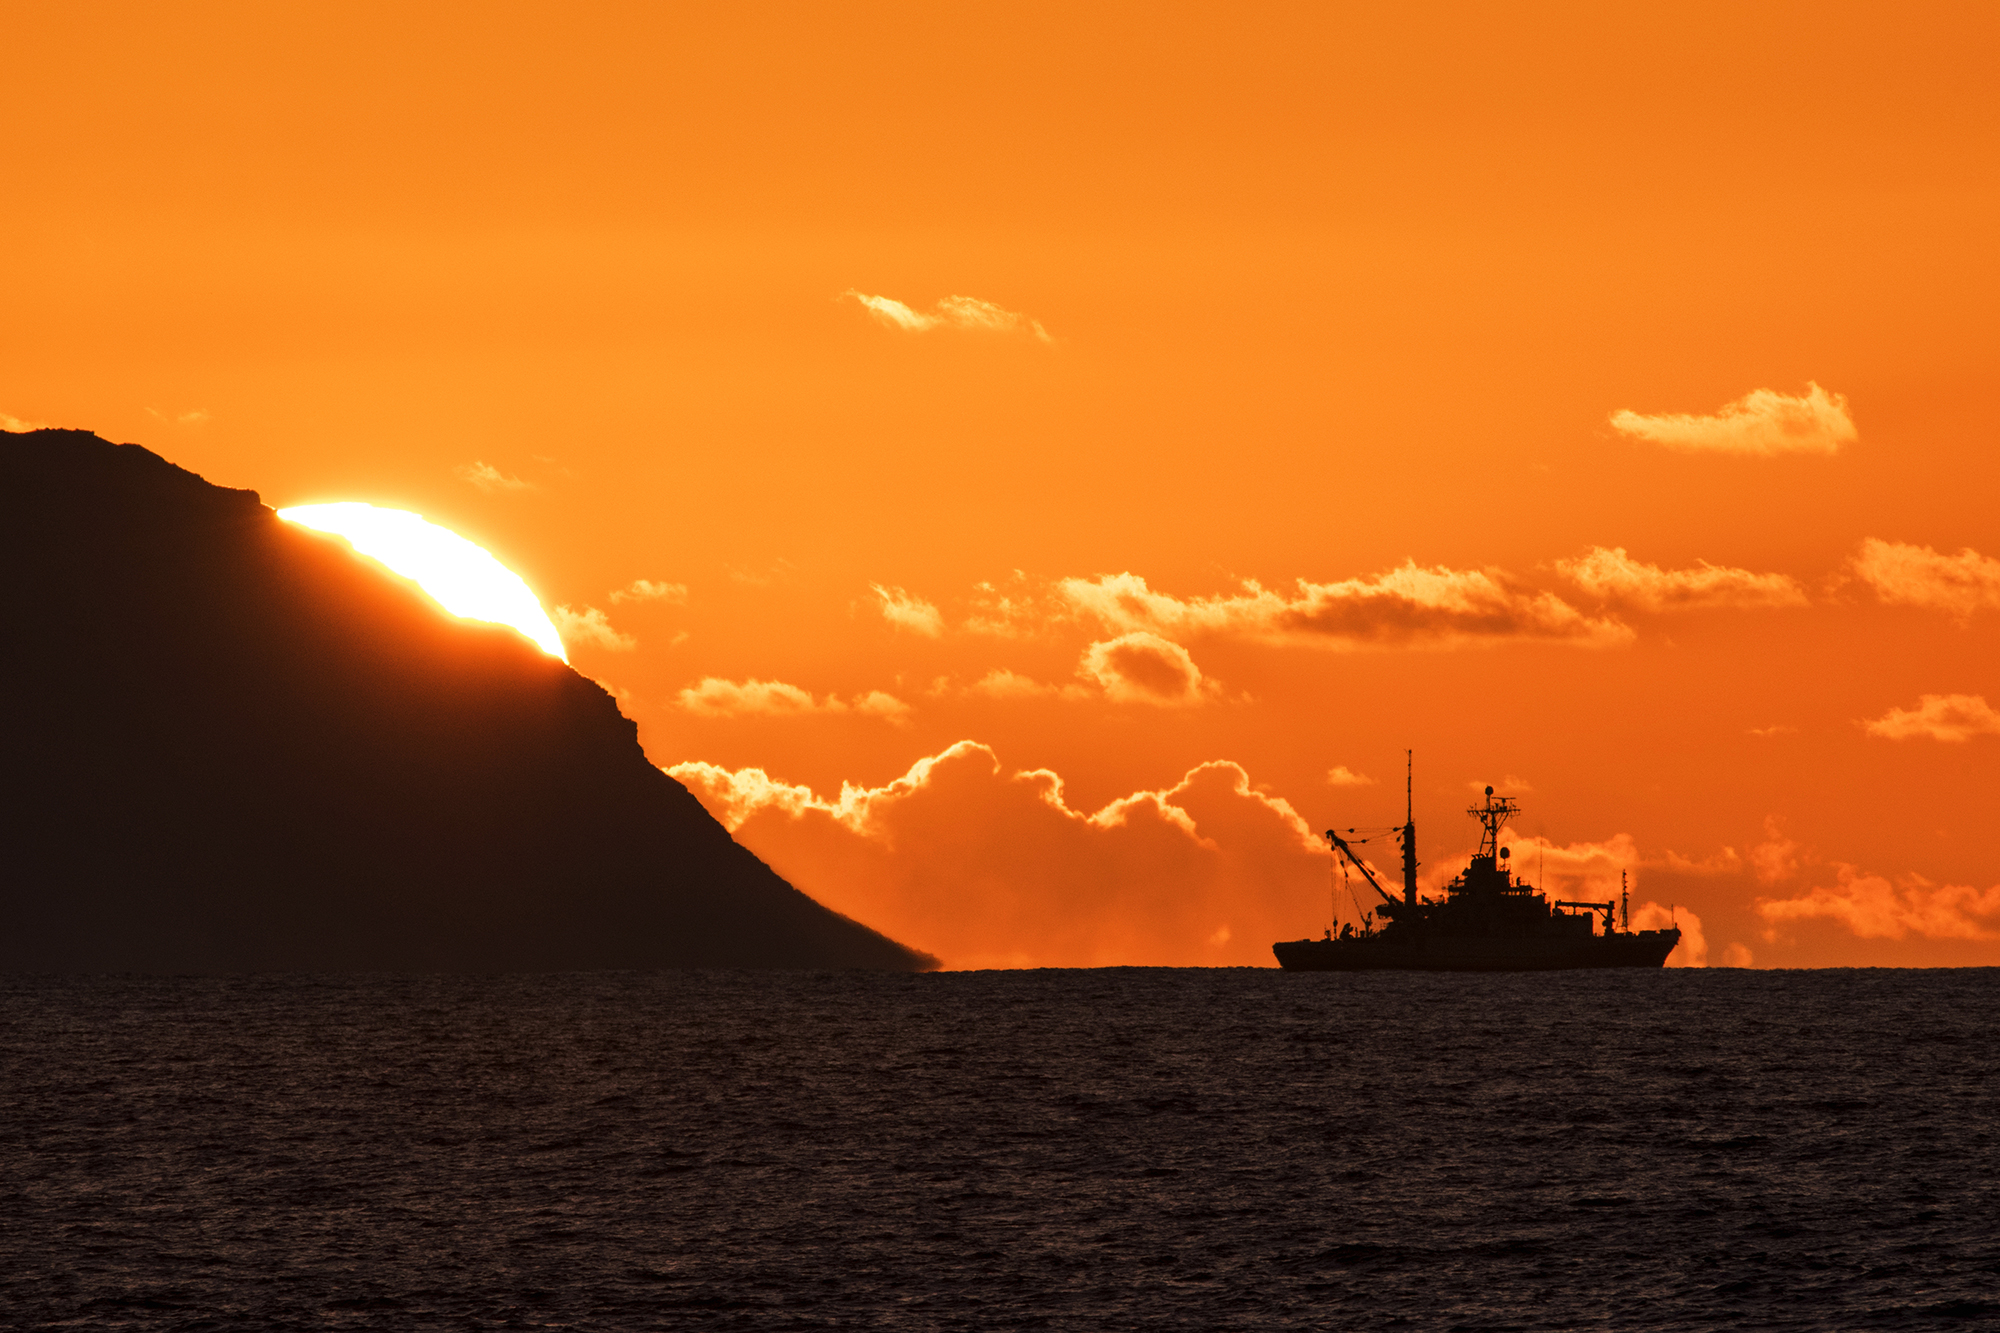 sonar ship with sunset